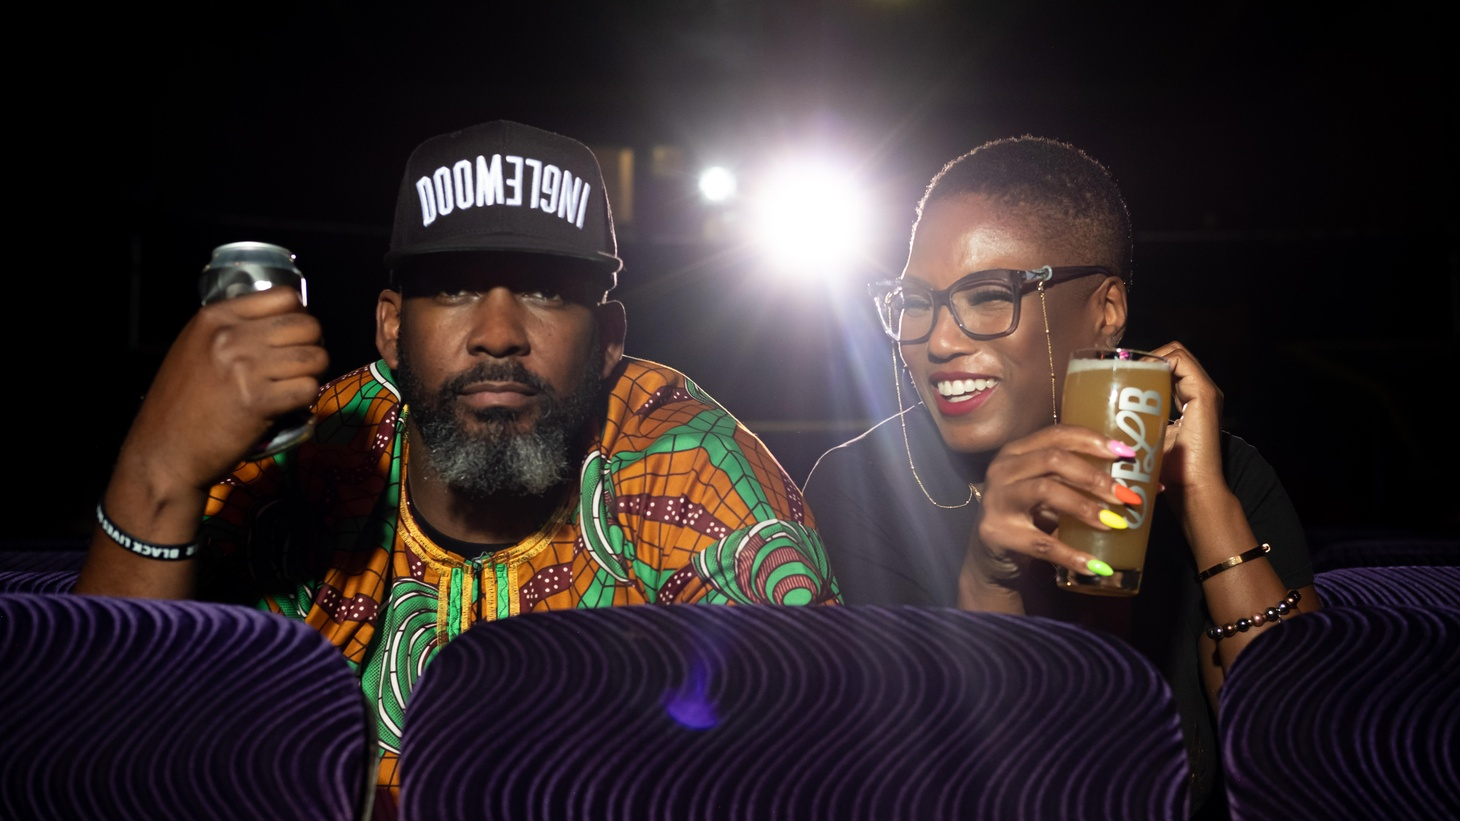 Teo Hunter and Beny Ashburn of Crowns & Hops started in the industry 7 years ago, set on showcasing Black and brown culture in craft beer.